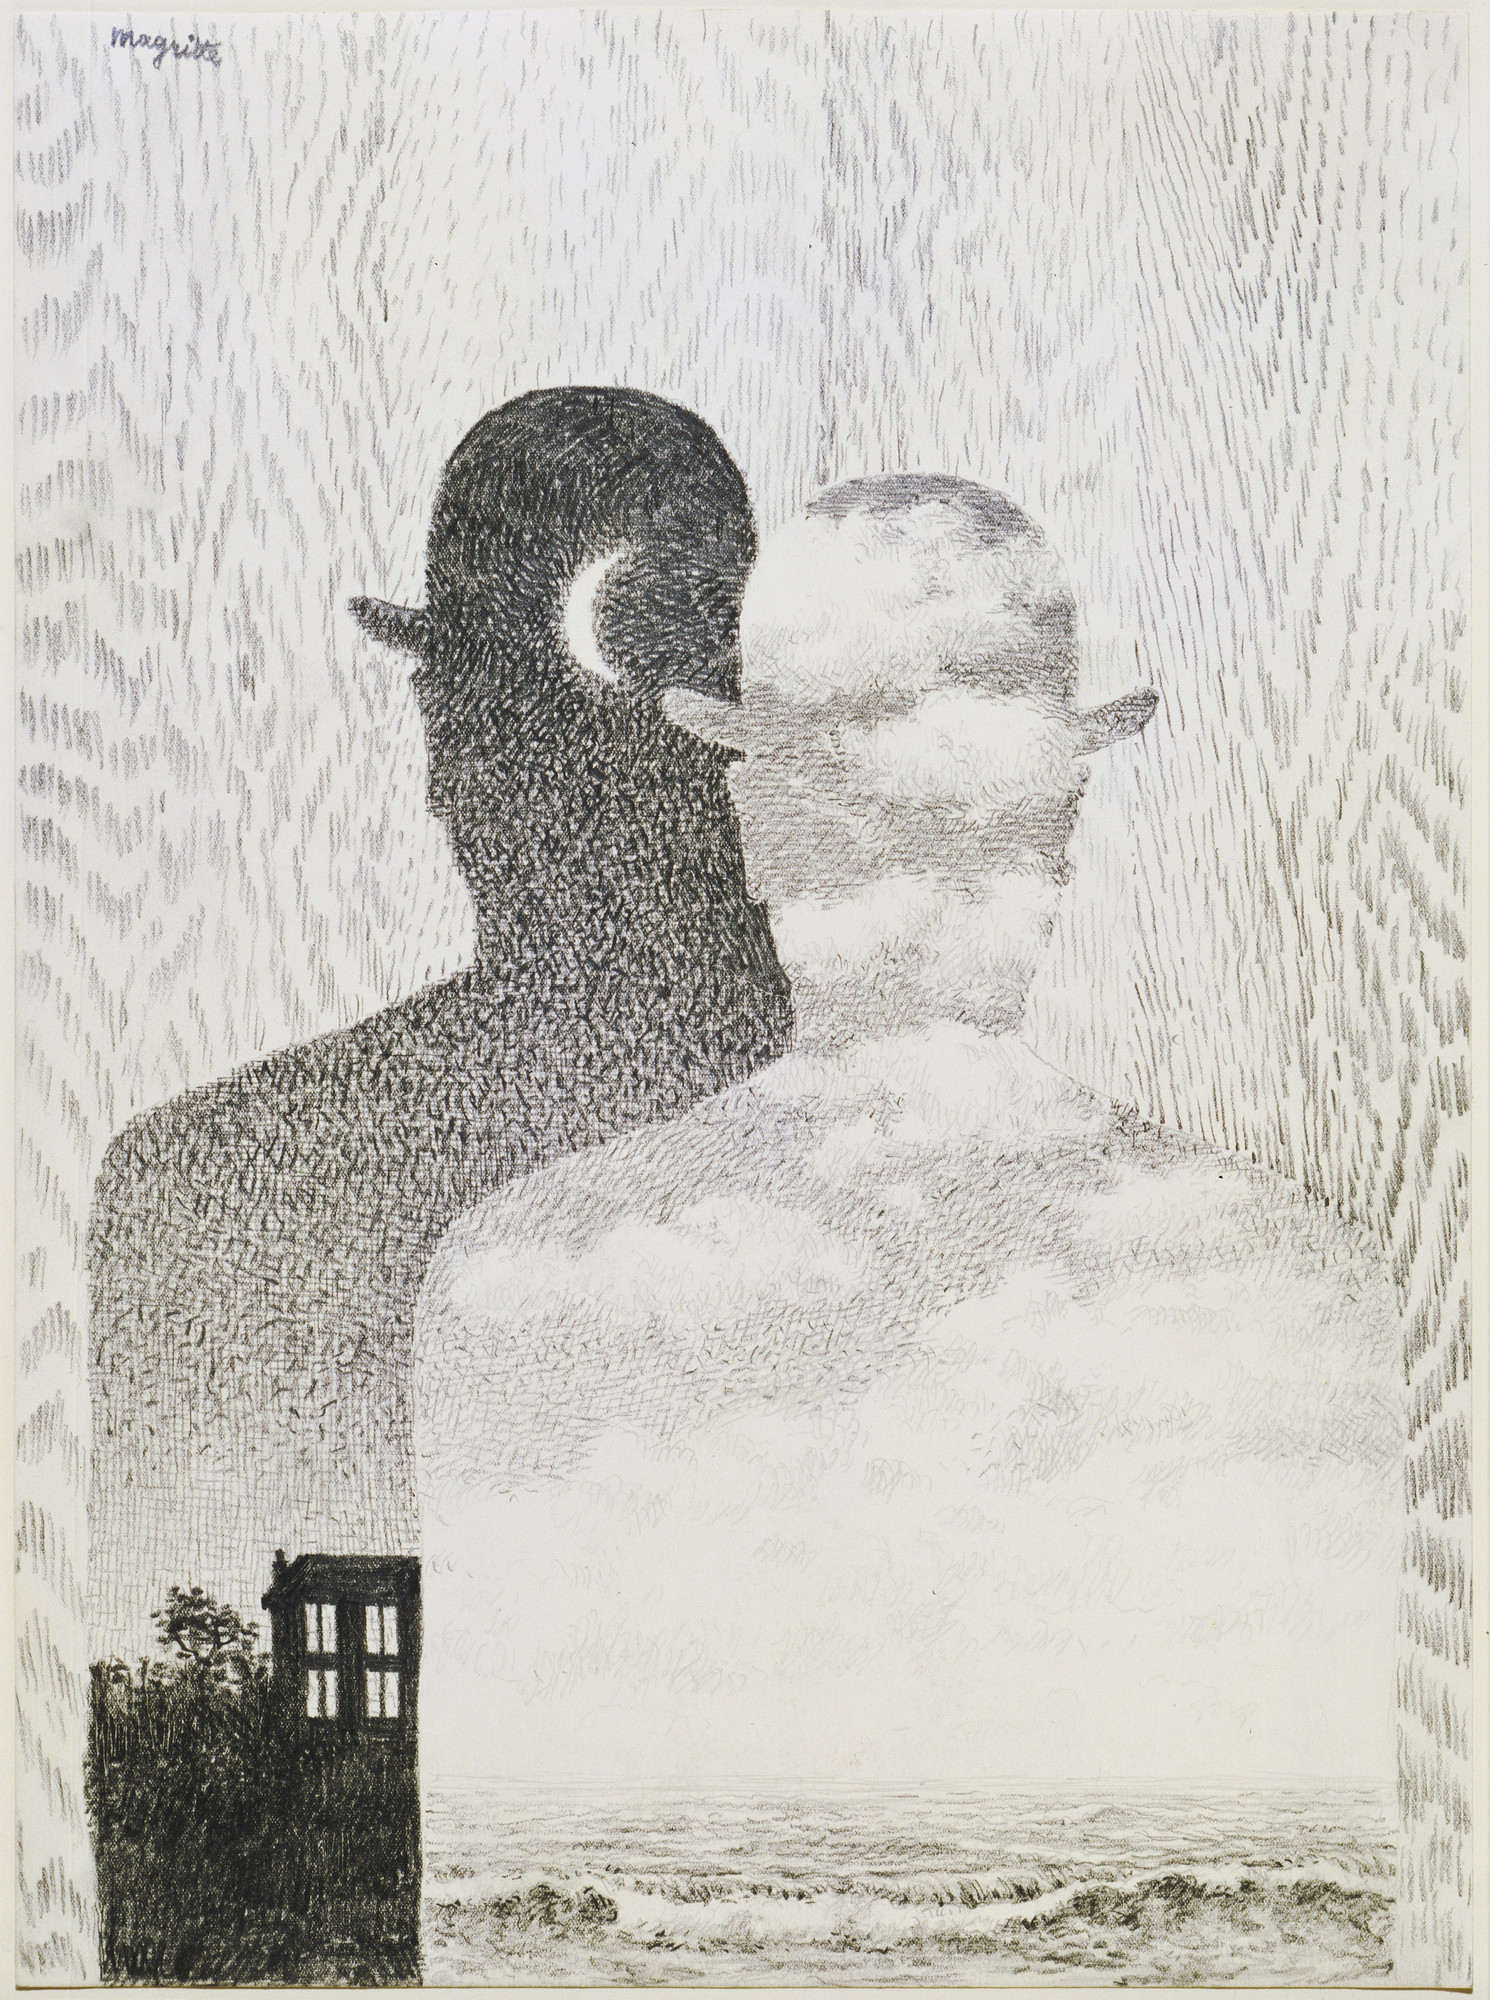 René Magritte. The Thought Which Sees. (1965)